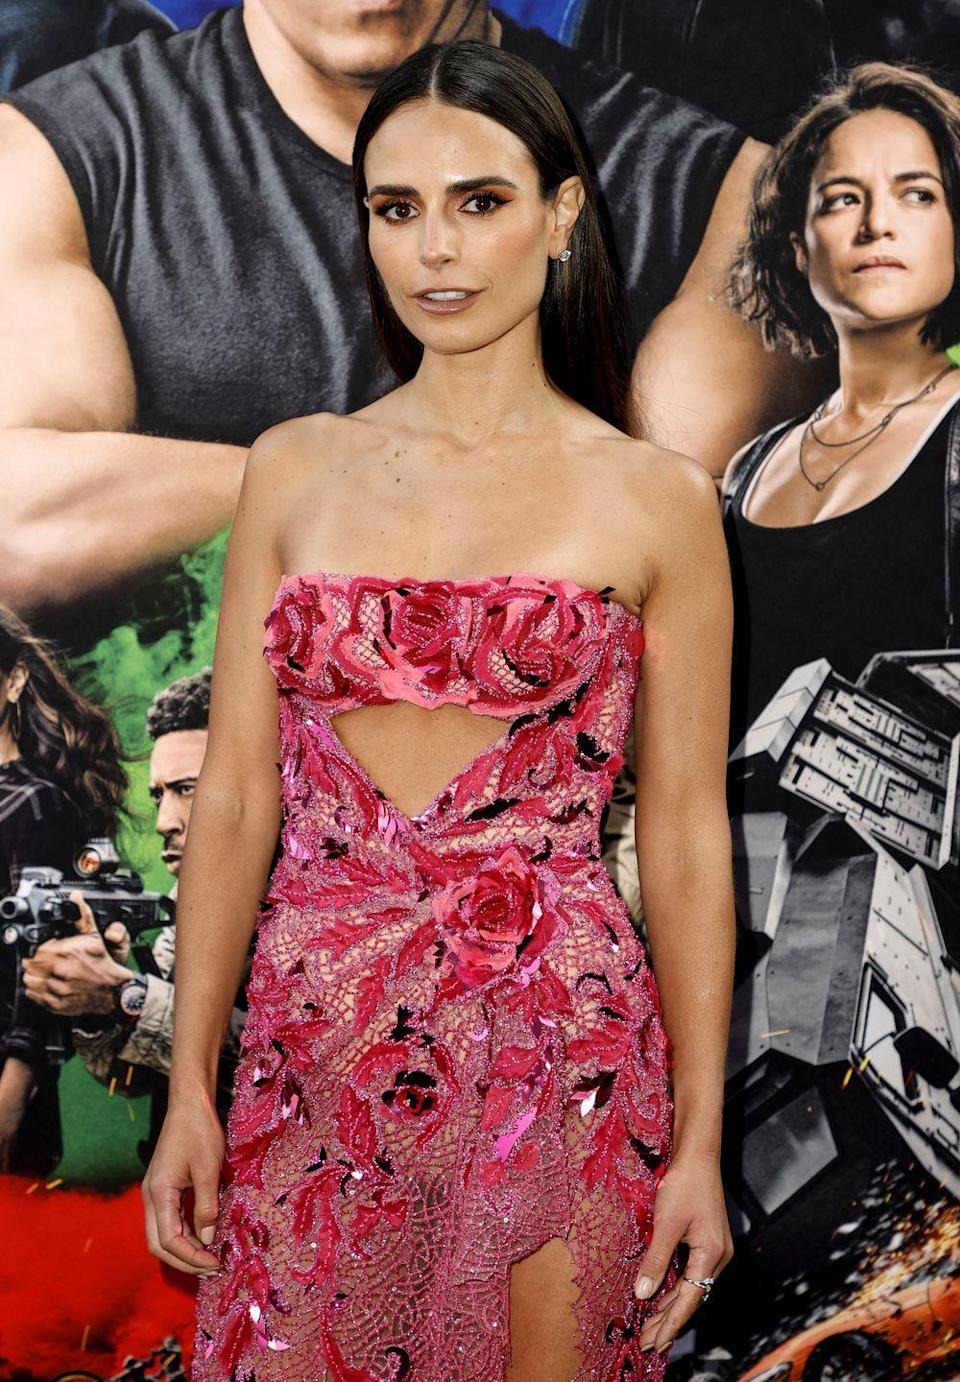 <p>While the actress rose to fame through the action films, Jordana Brewster branched out to other genres, appearing in the horror film <em>The Texas Chainsaw Massacre: The Beginning</em><em>. </em>She has continued to reprise her role as the beloved Mia and appears in the franchise's latest installment <em>F9</em>. </p>